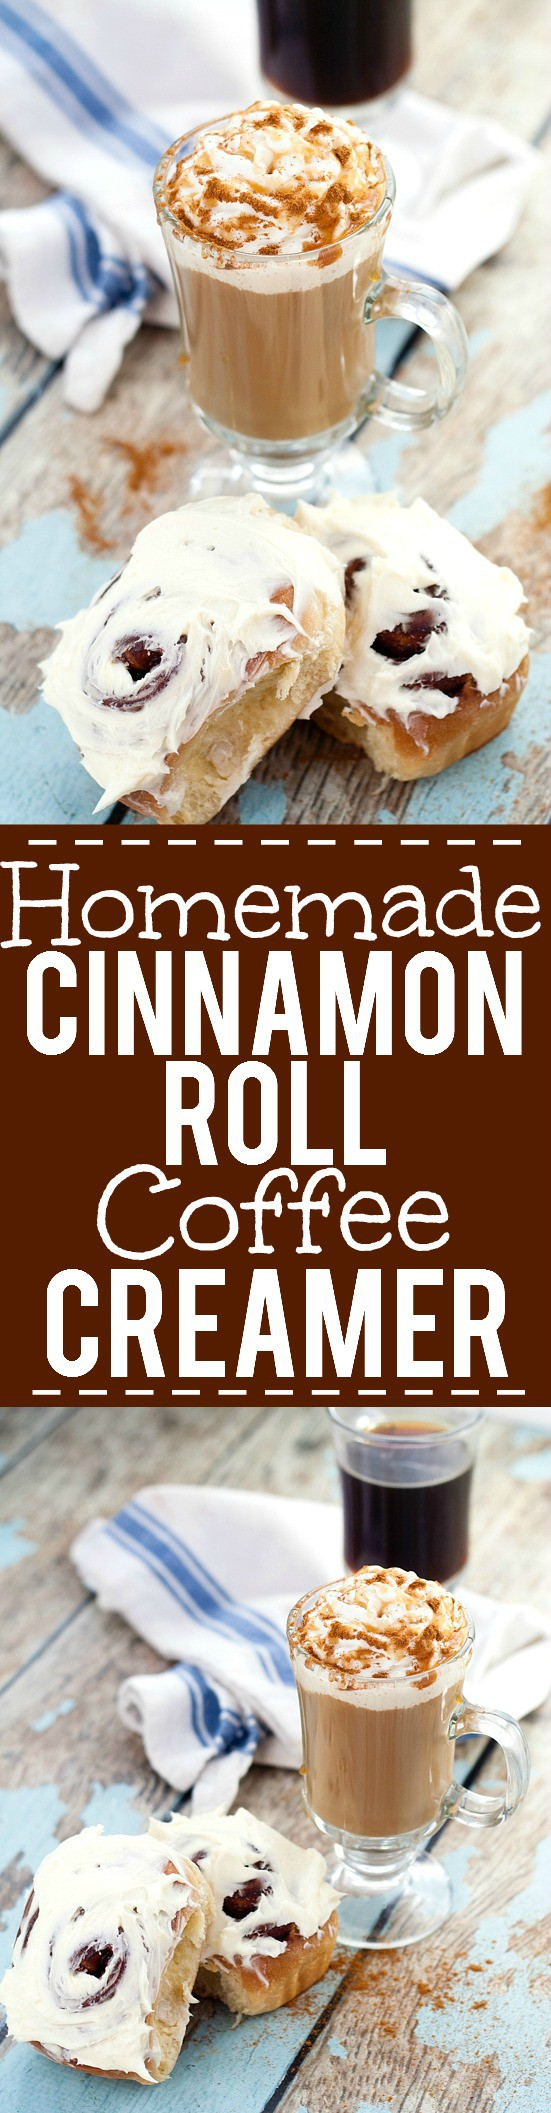 Homemade Cinnamon Roll Coffee Creamer recipe - Have your coffee as a decadent breakfast with this Cinnabon inspired Homemade Cinnamon Roll Creamer recipe with cinnamon, vanilla, and brown sugar. YES! I LOVE Cinnabon!